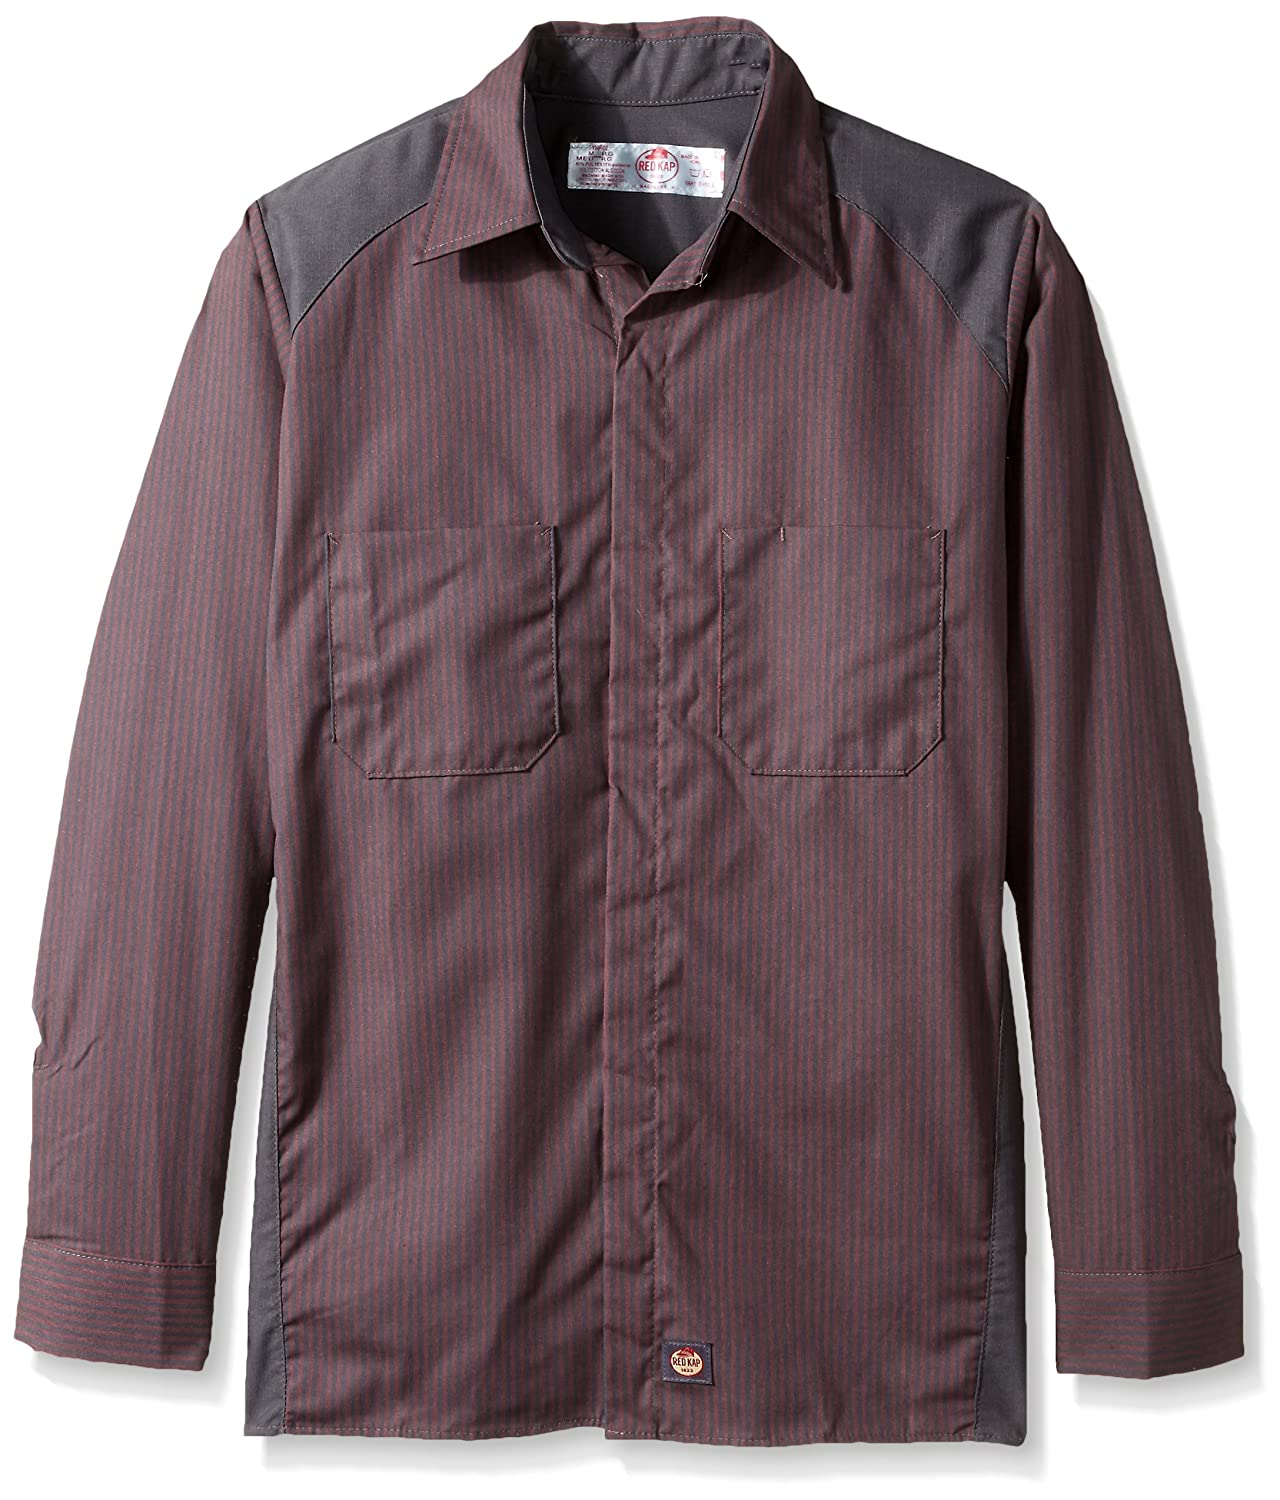 Red Kap SHIRT メンズ B072ZSZGGW Small|Red/Charcoal Stripe With Charcoal Contrast Red/Charcoal Stripe With Charcoal Contrast Small